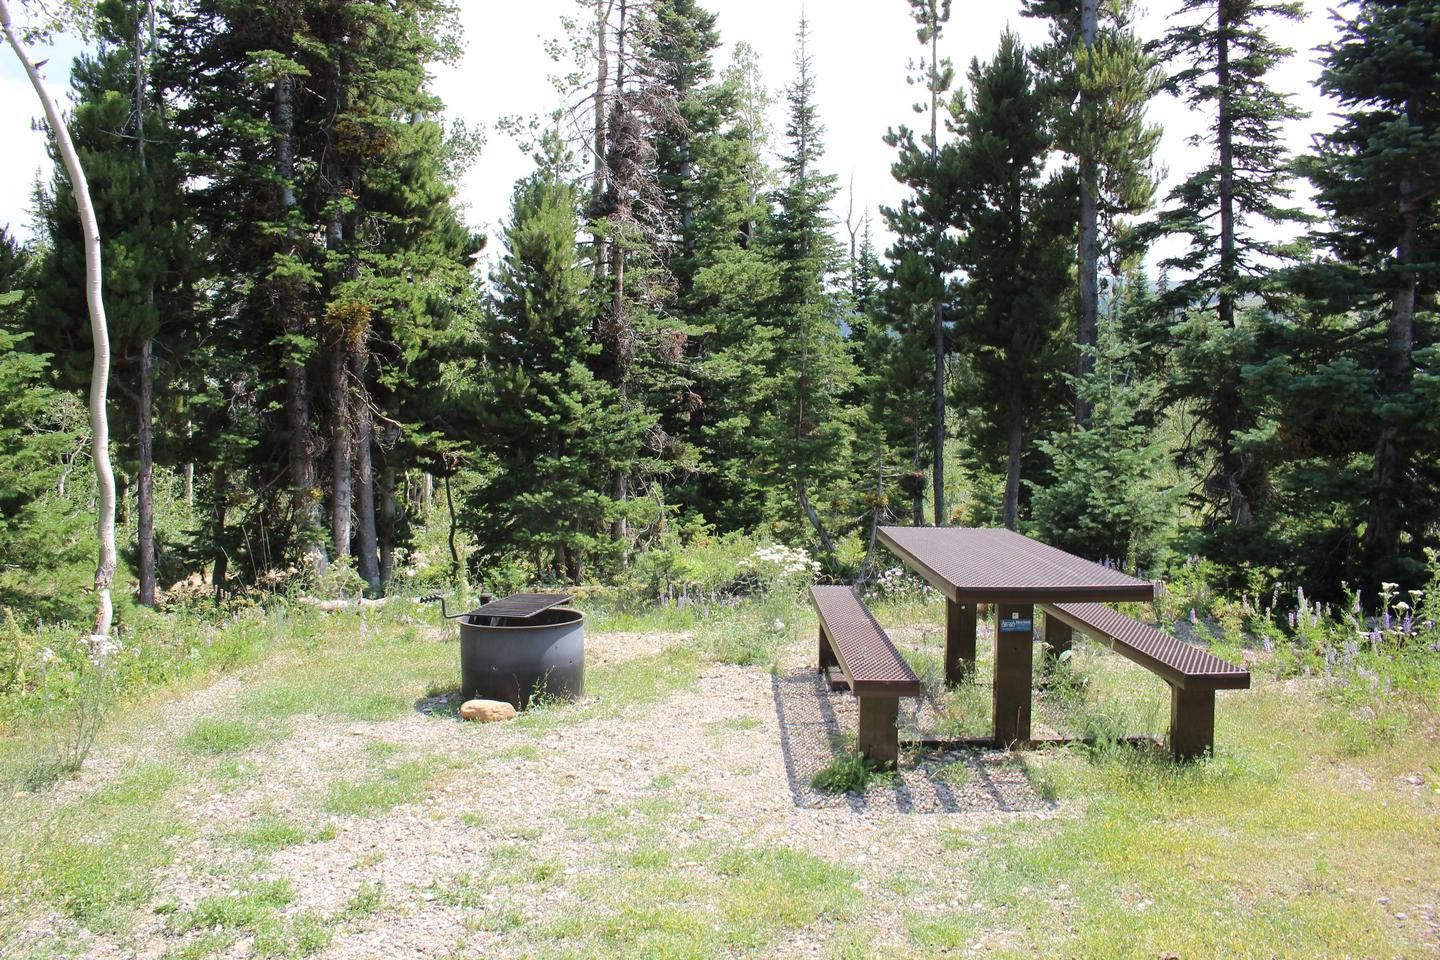 Site 11.Table And Fire Ring